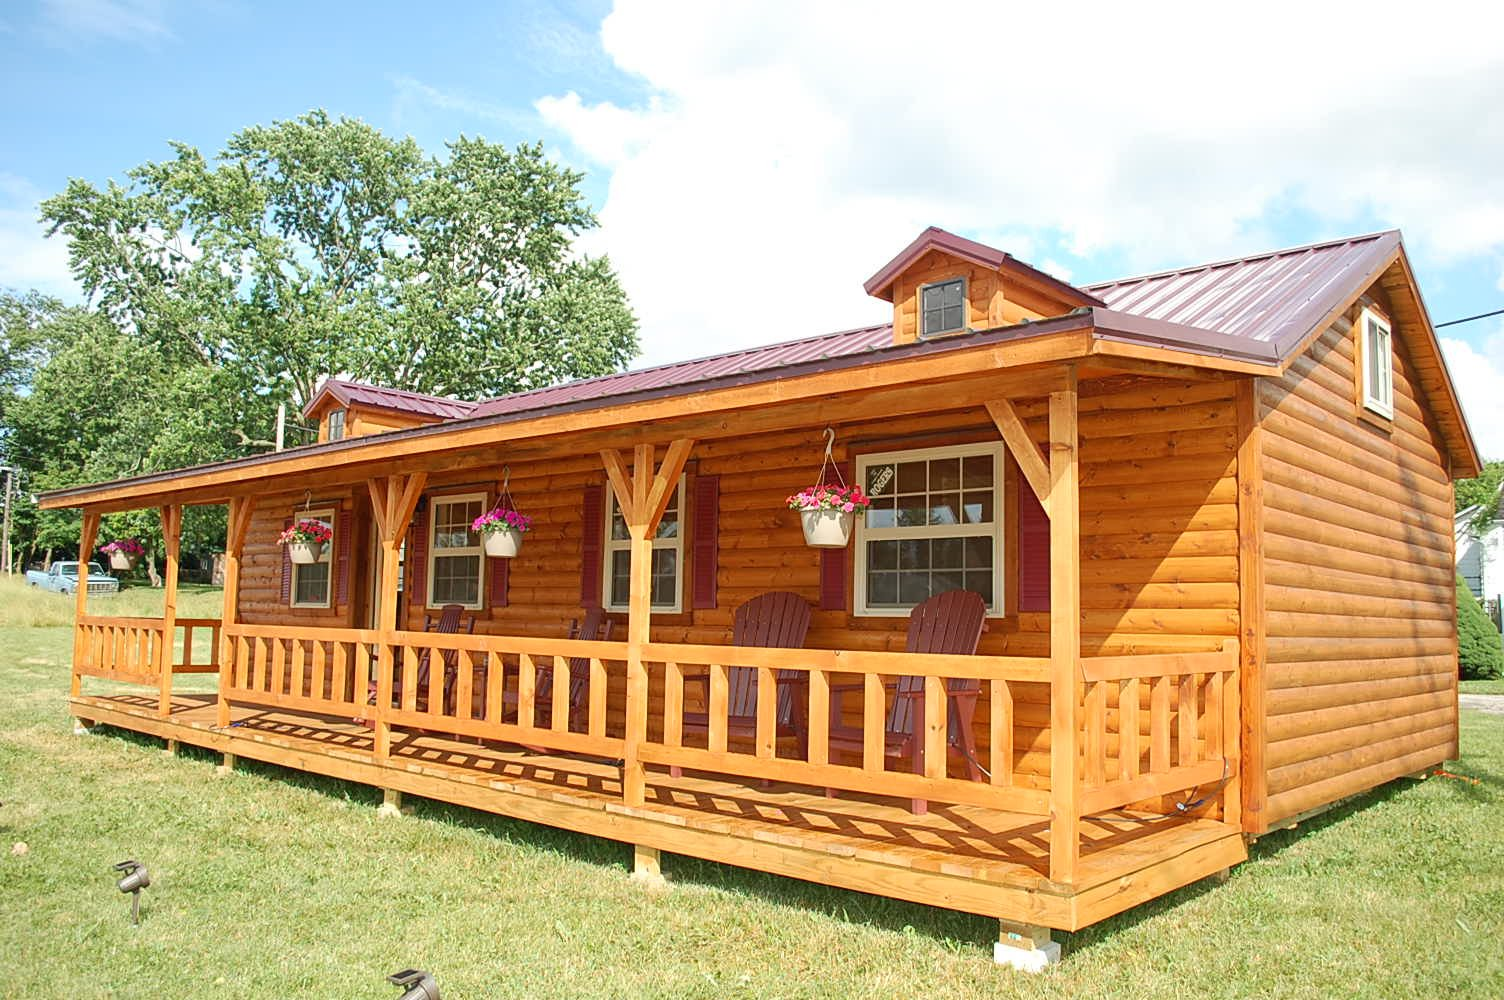 Log cabin kits 10 of the best on the market for Home building kits texas